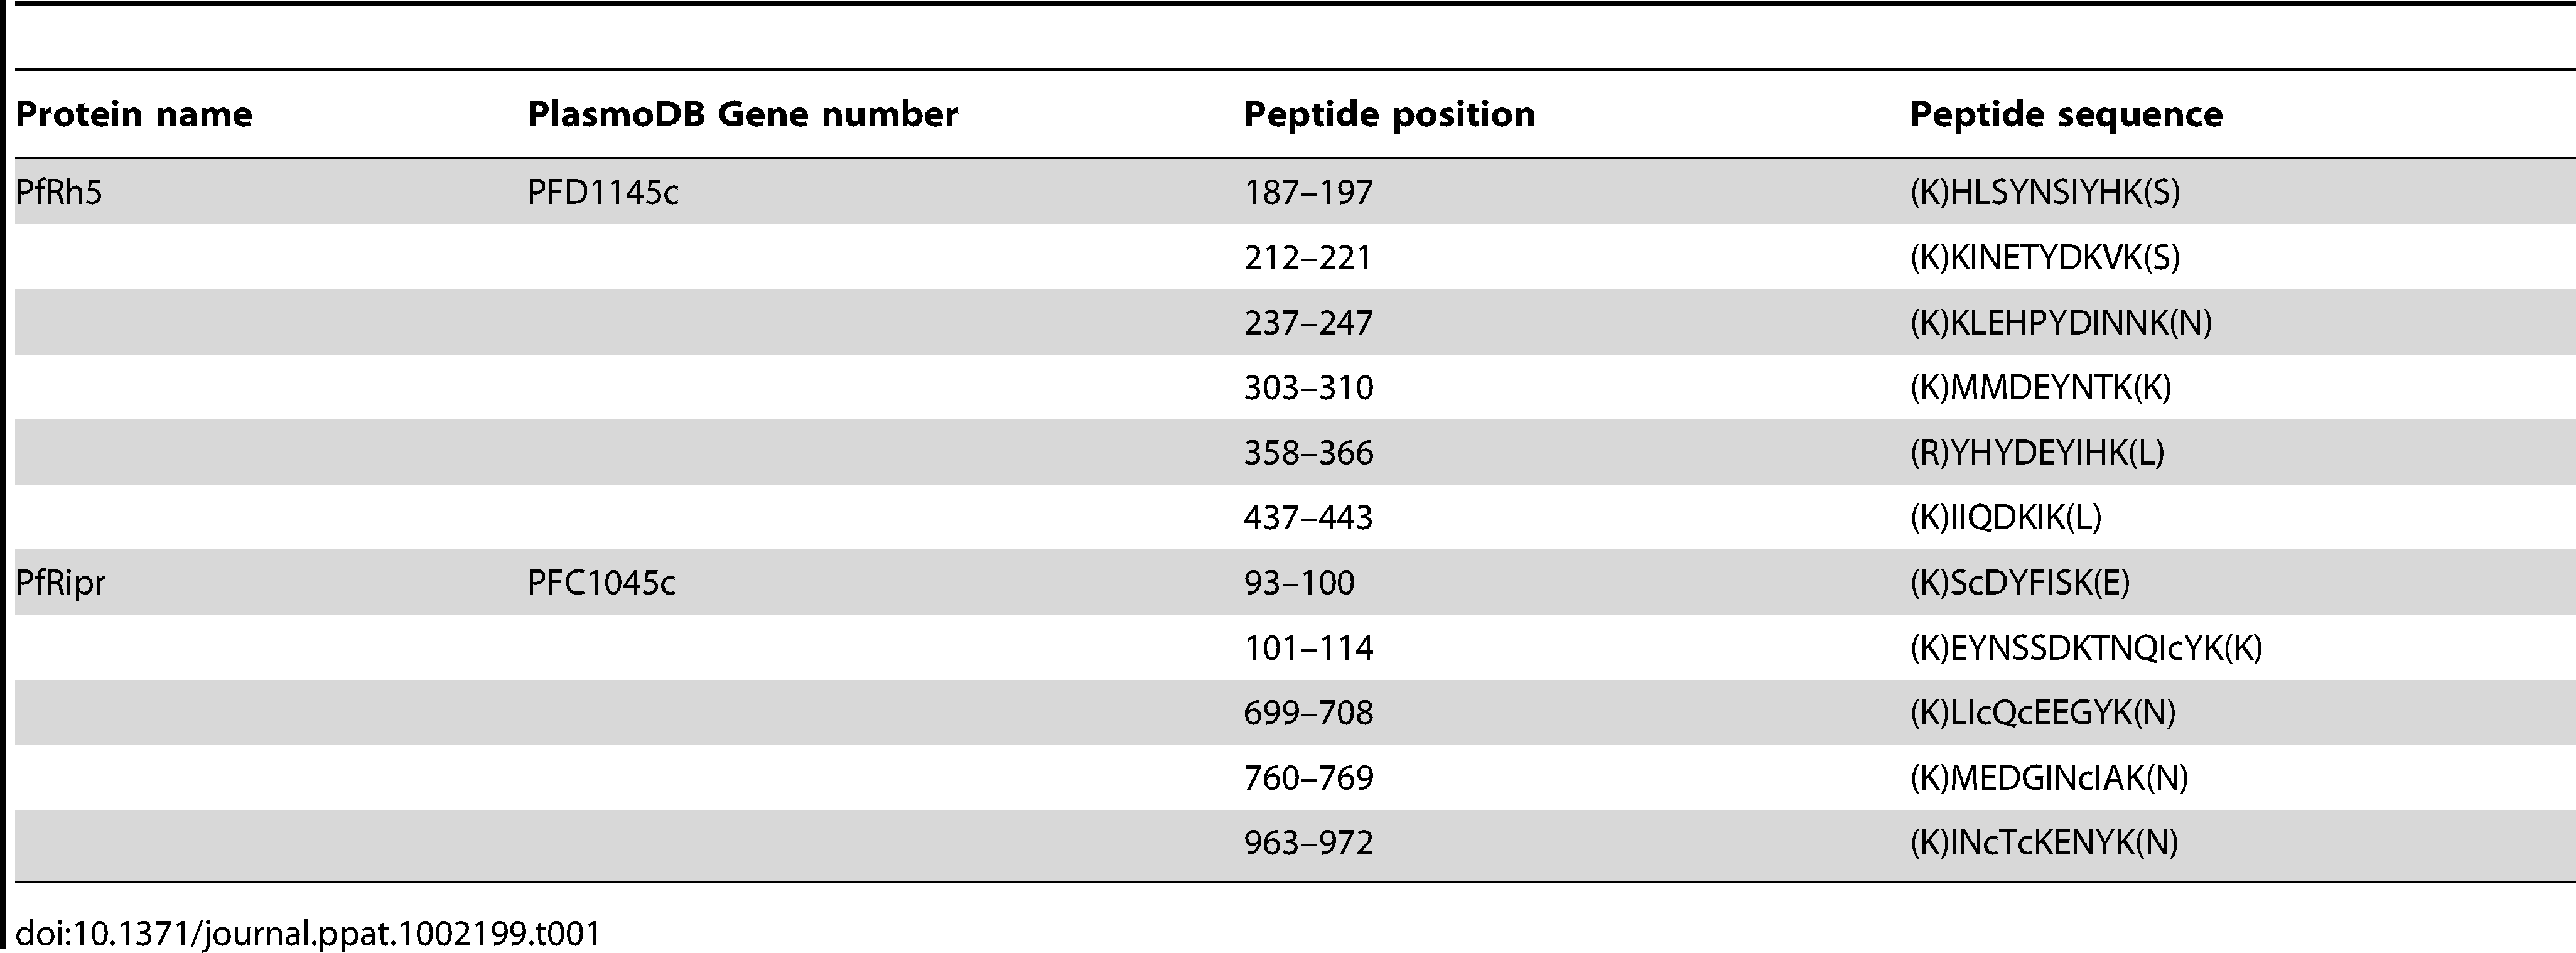 Peptides identified by Mass spectrometry from purified PfRh5.